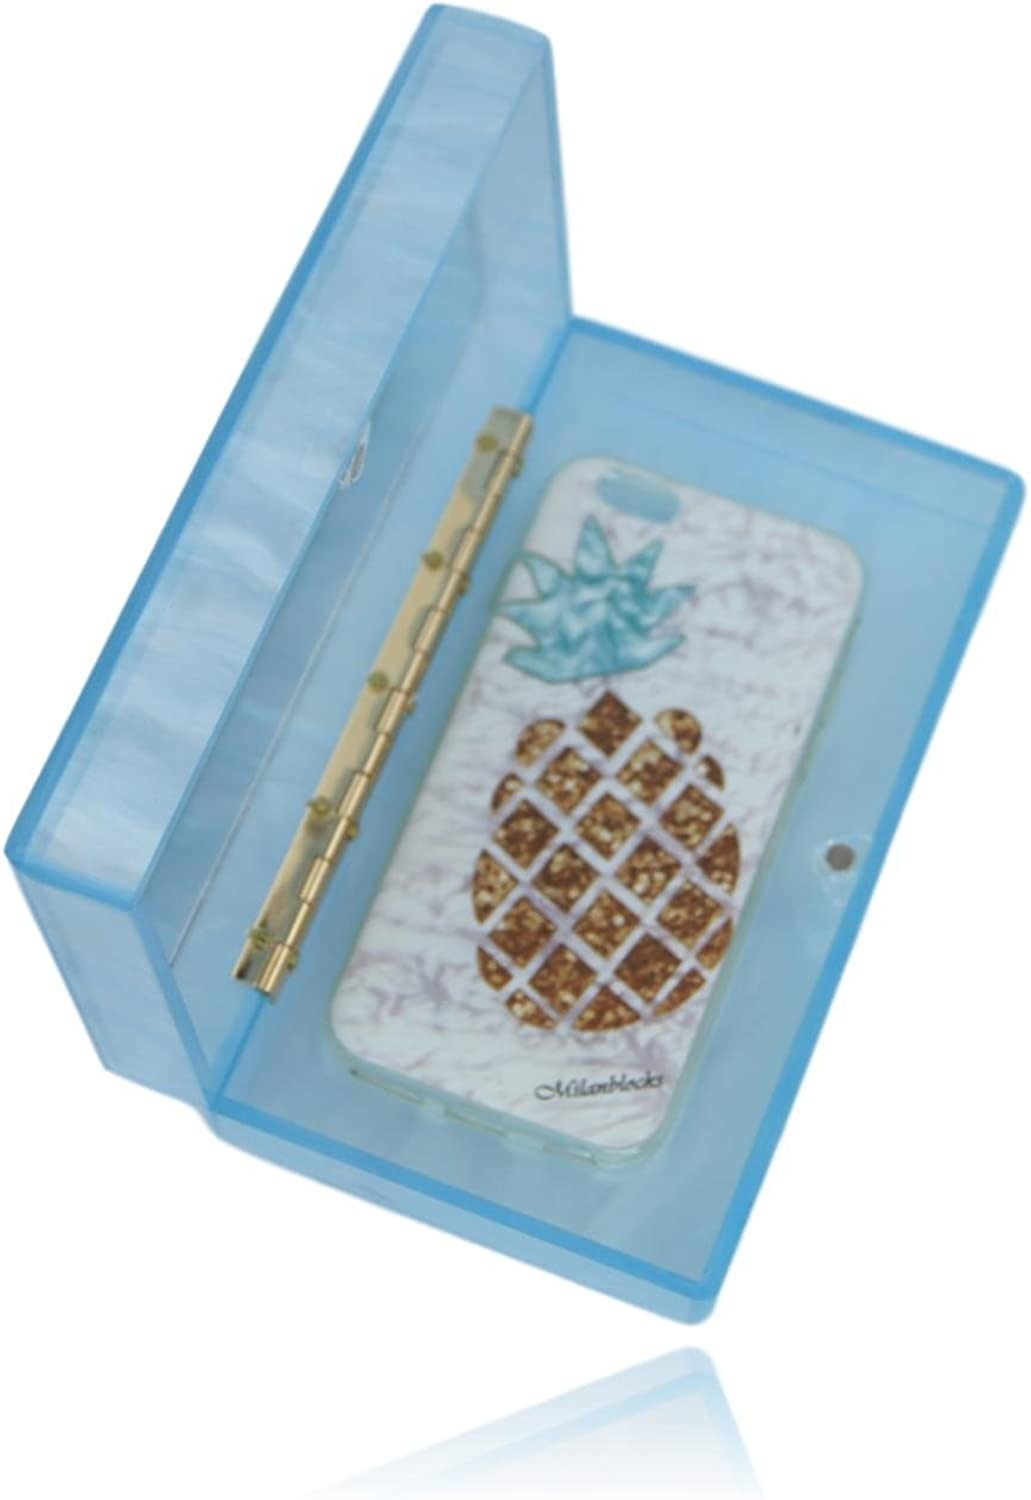 Baby bluee Acrylic Box Clutch with Mirror